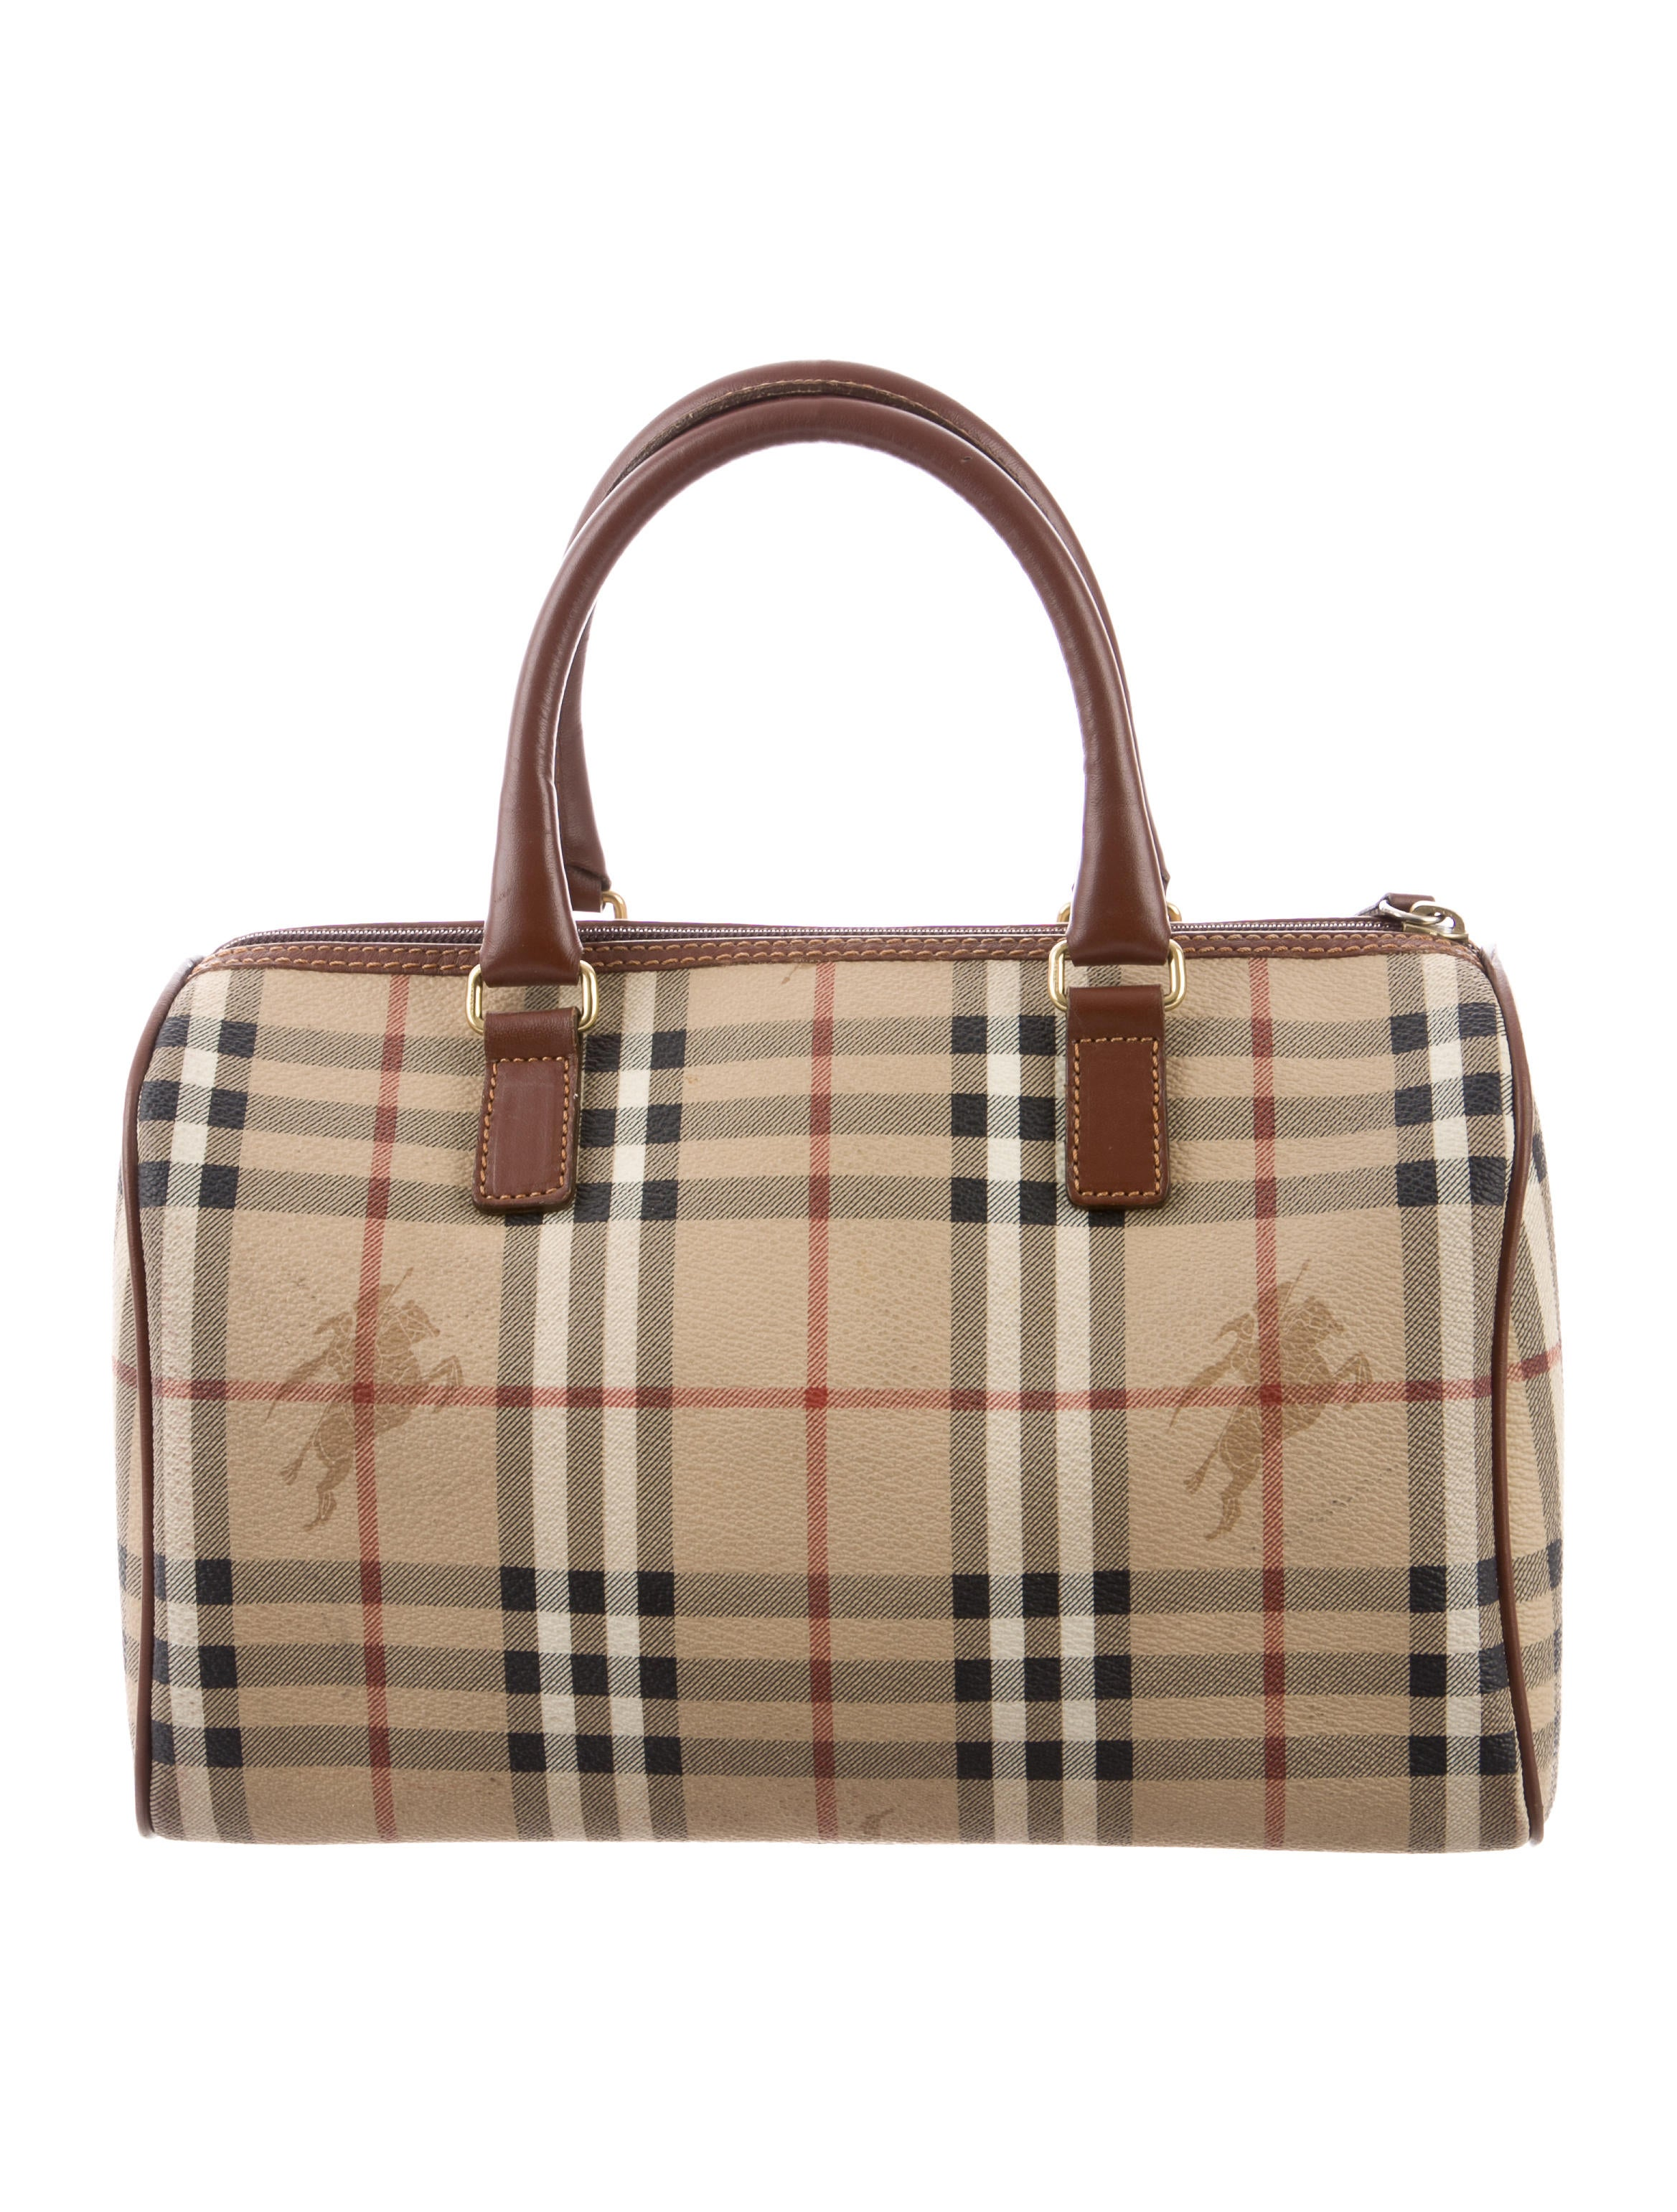 Burberry Haymarket Check Chester Bag - Handbags - BUR94733  68c7702f57a2c